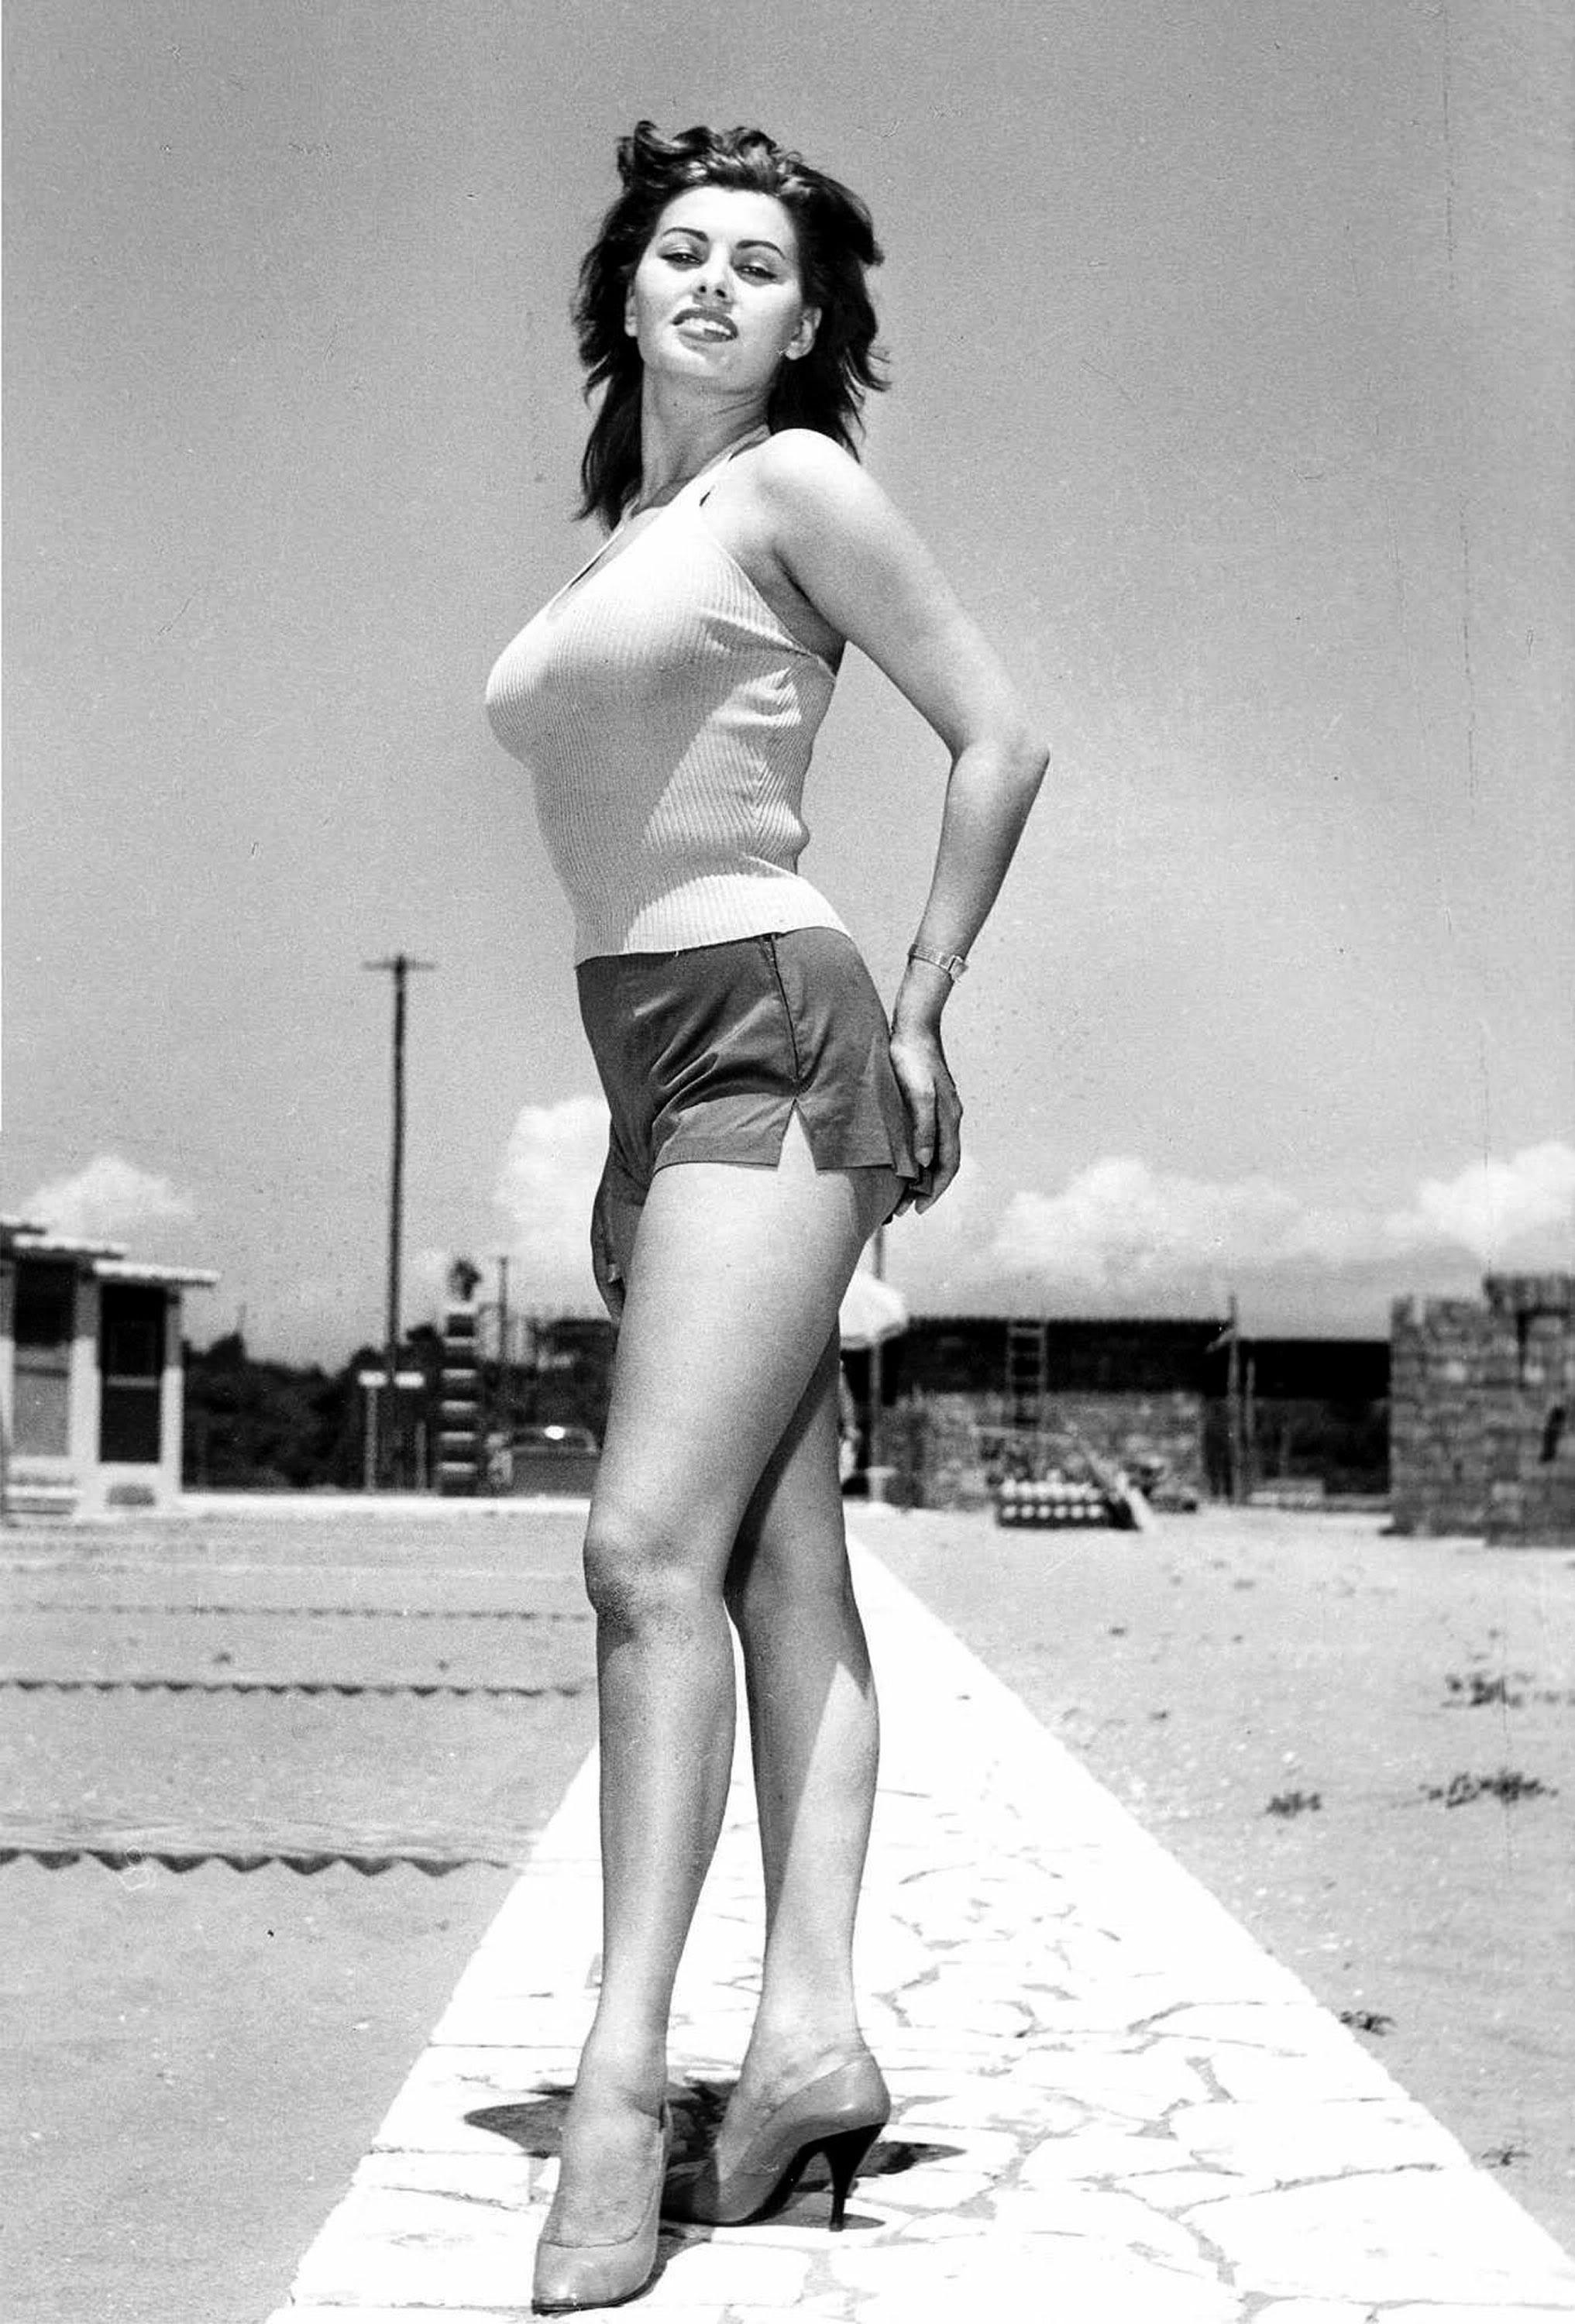 168487_sophia-loren-in-shorts-1328508005-7923